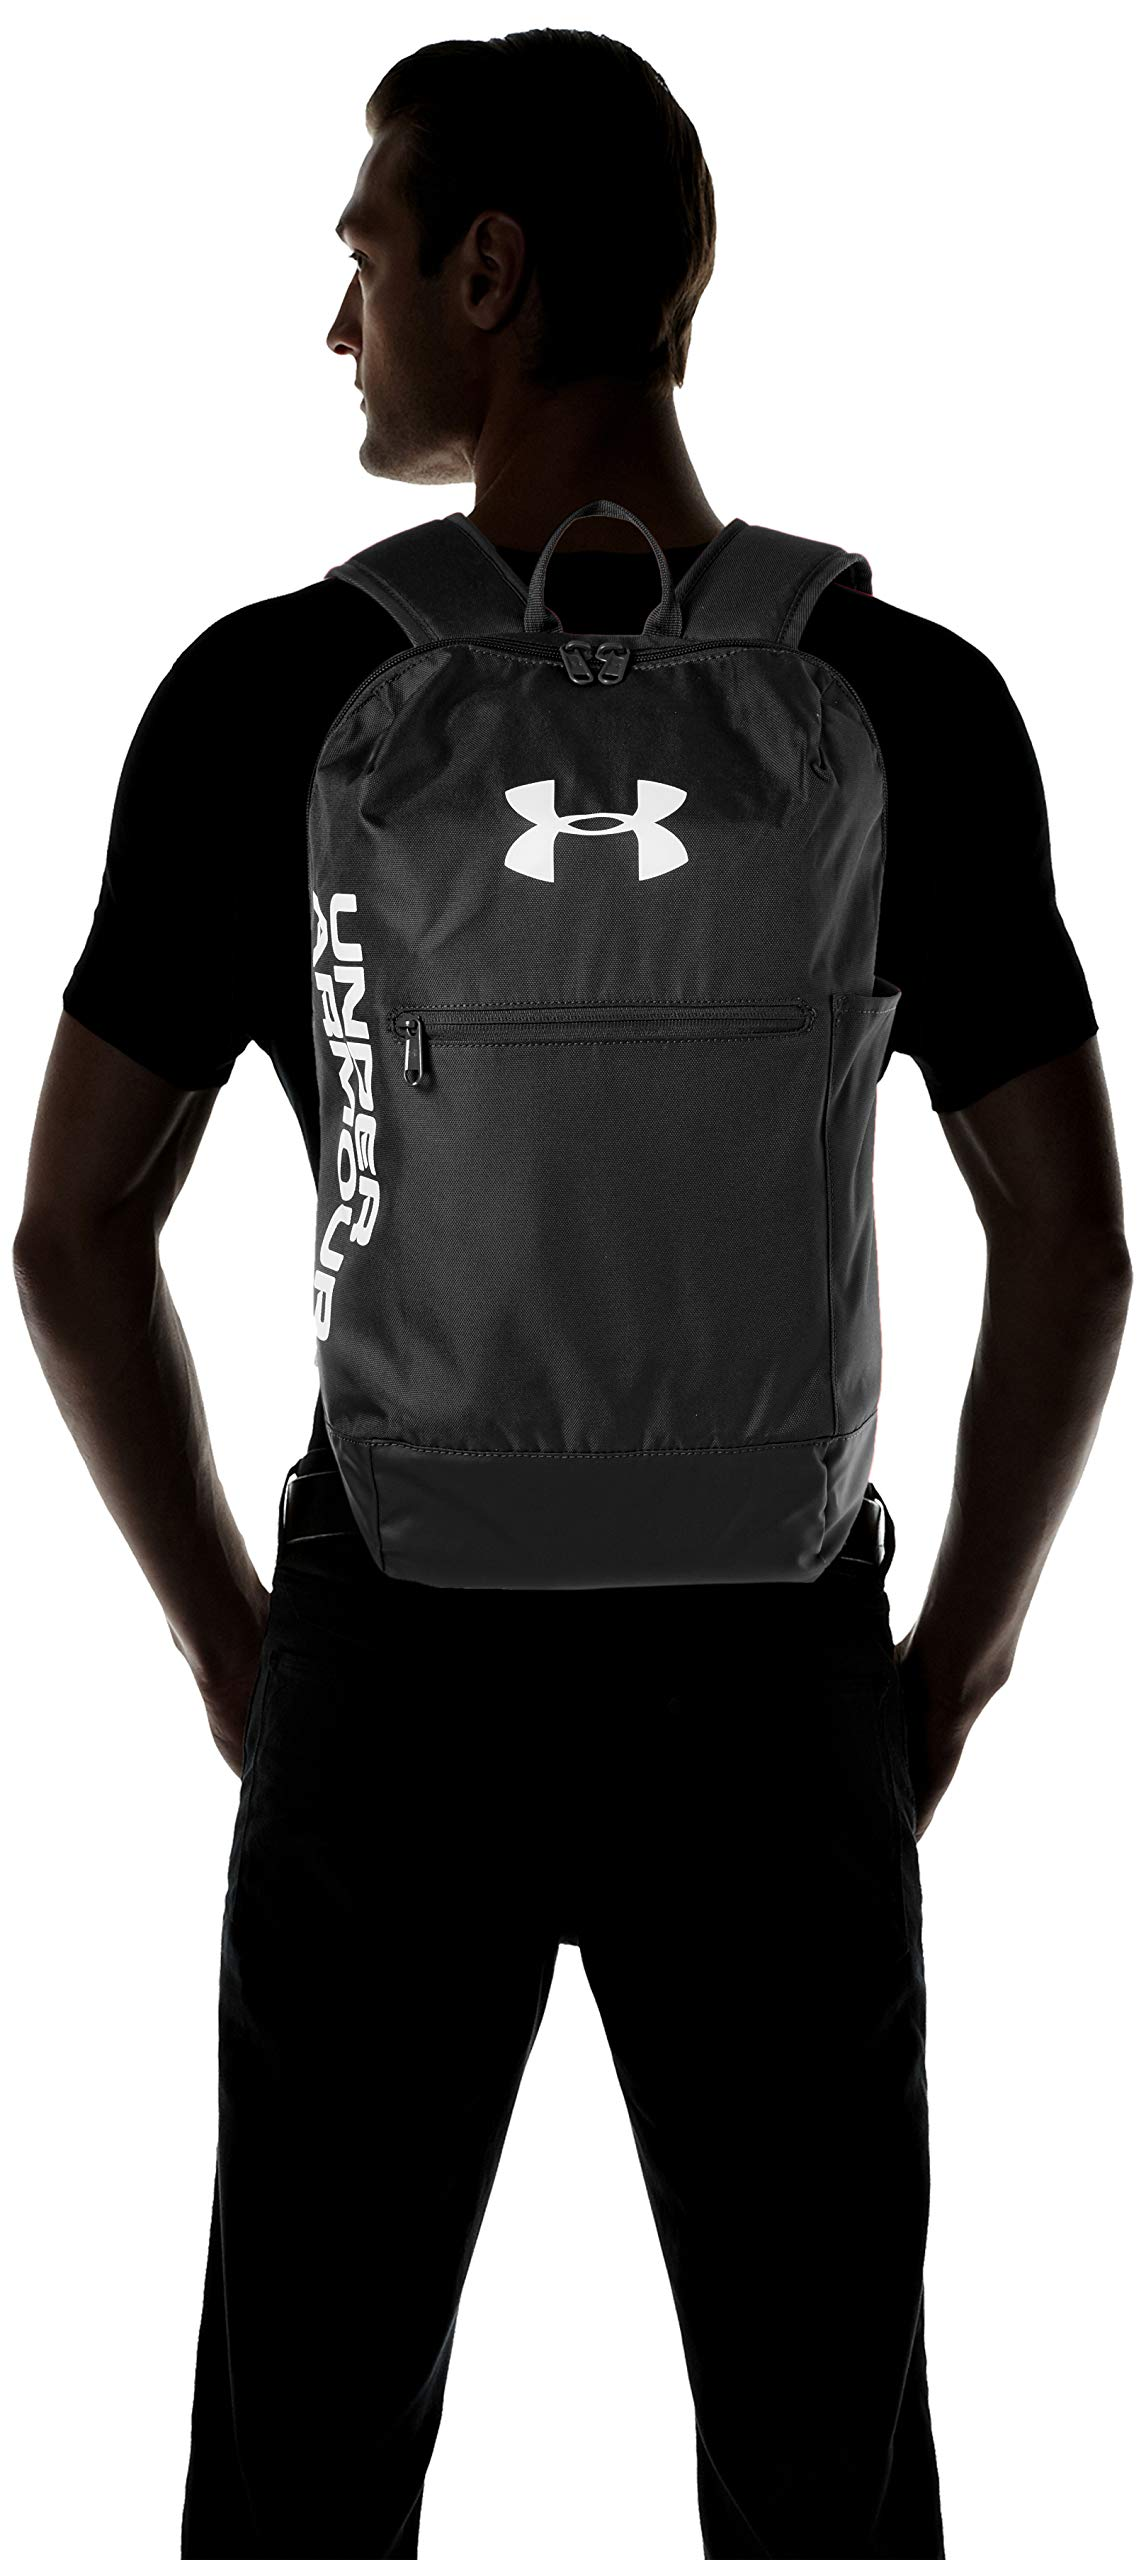 718Mz685giL - Under Armour Patterson Backpack, Mochila Unisex